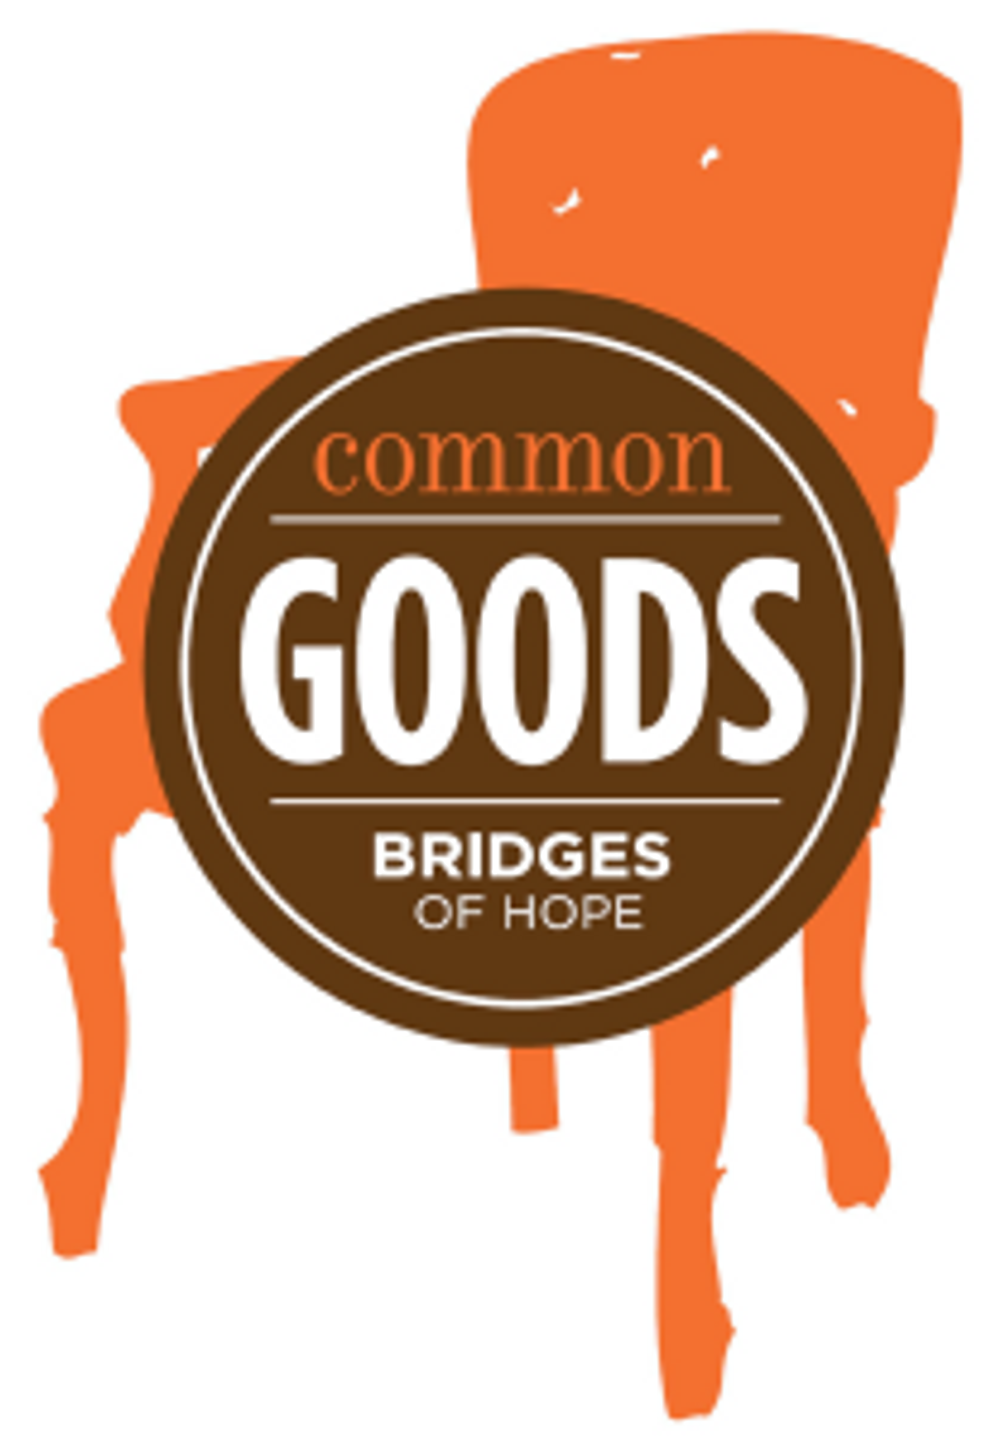 Common Goods logo